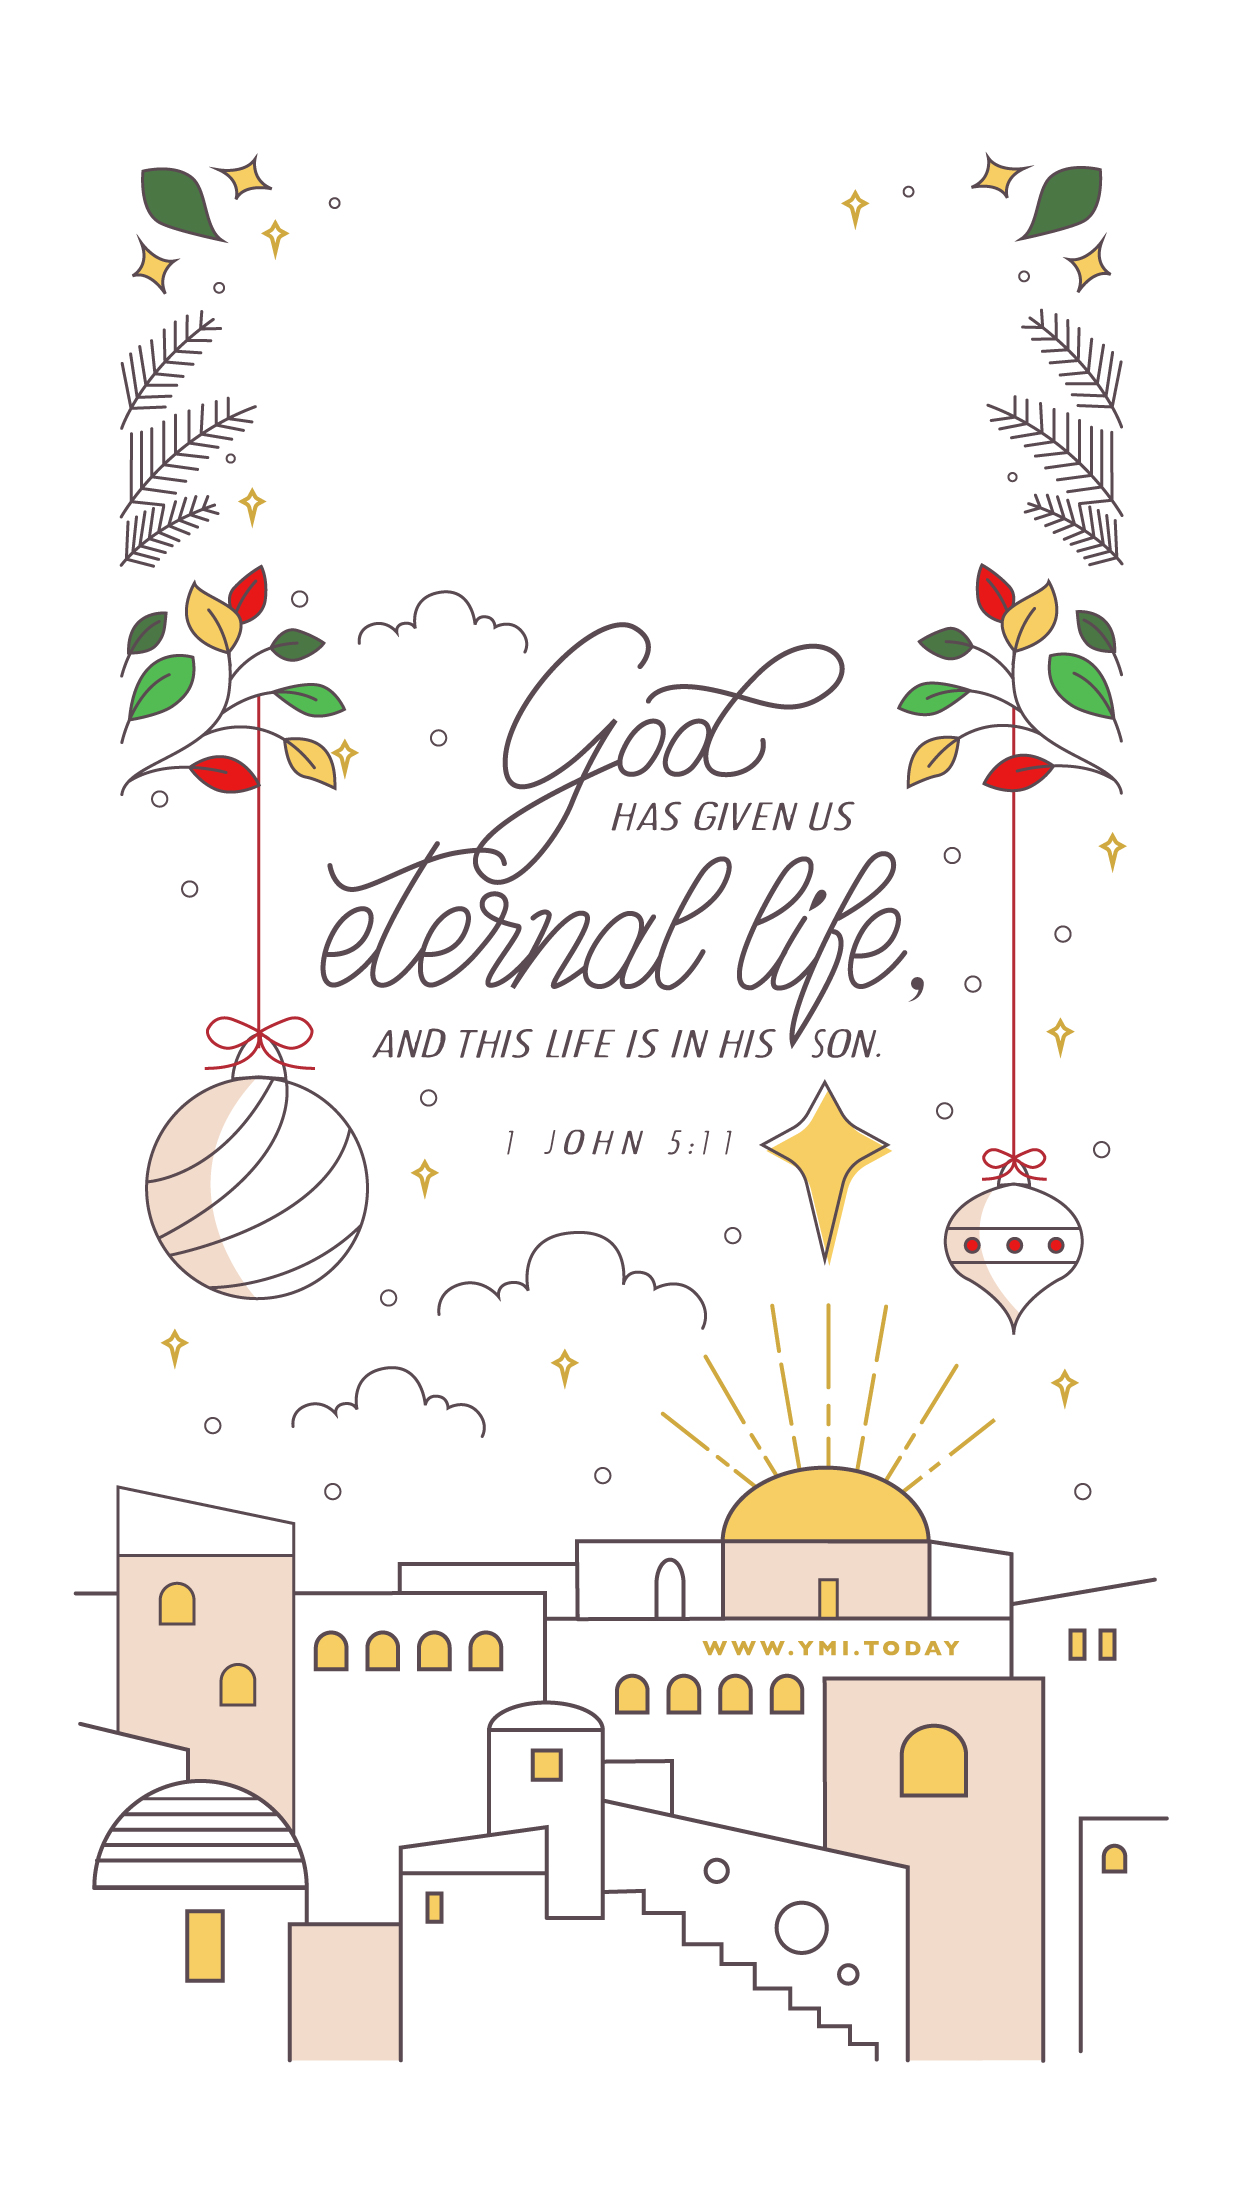 YMI December 2018 Phone Lockscreen - God has given us eternal life and this life is in His Son. - 1 John 5:11